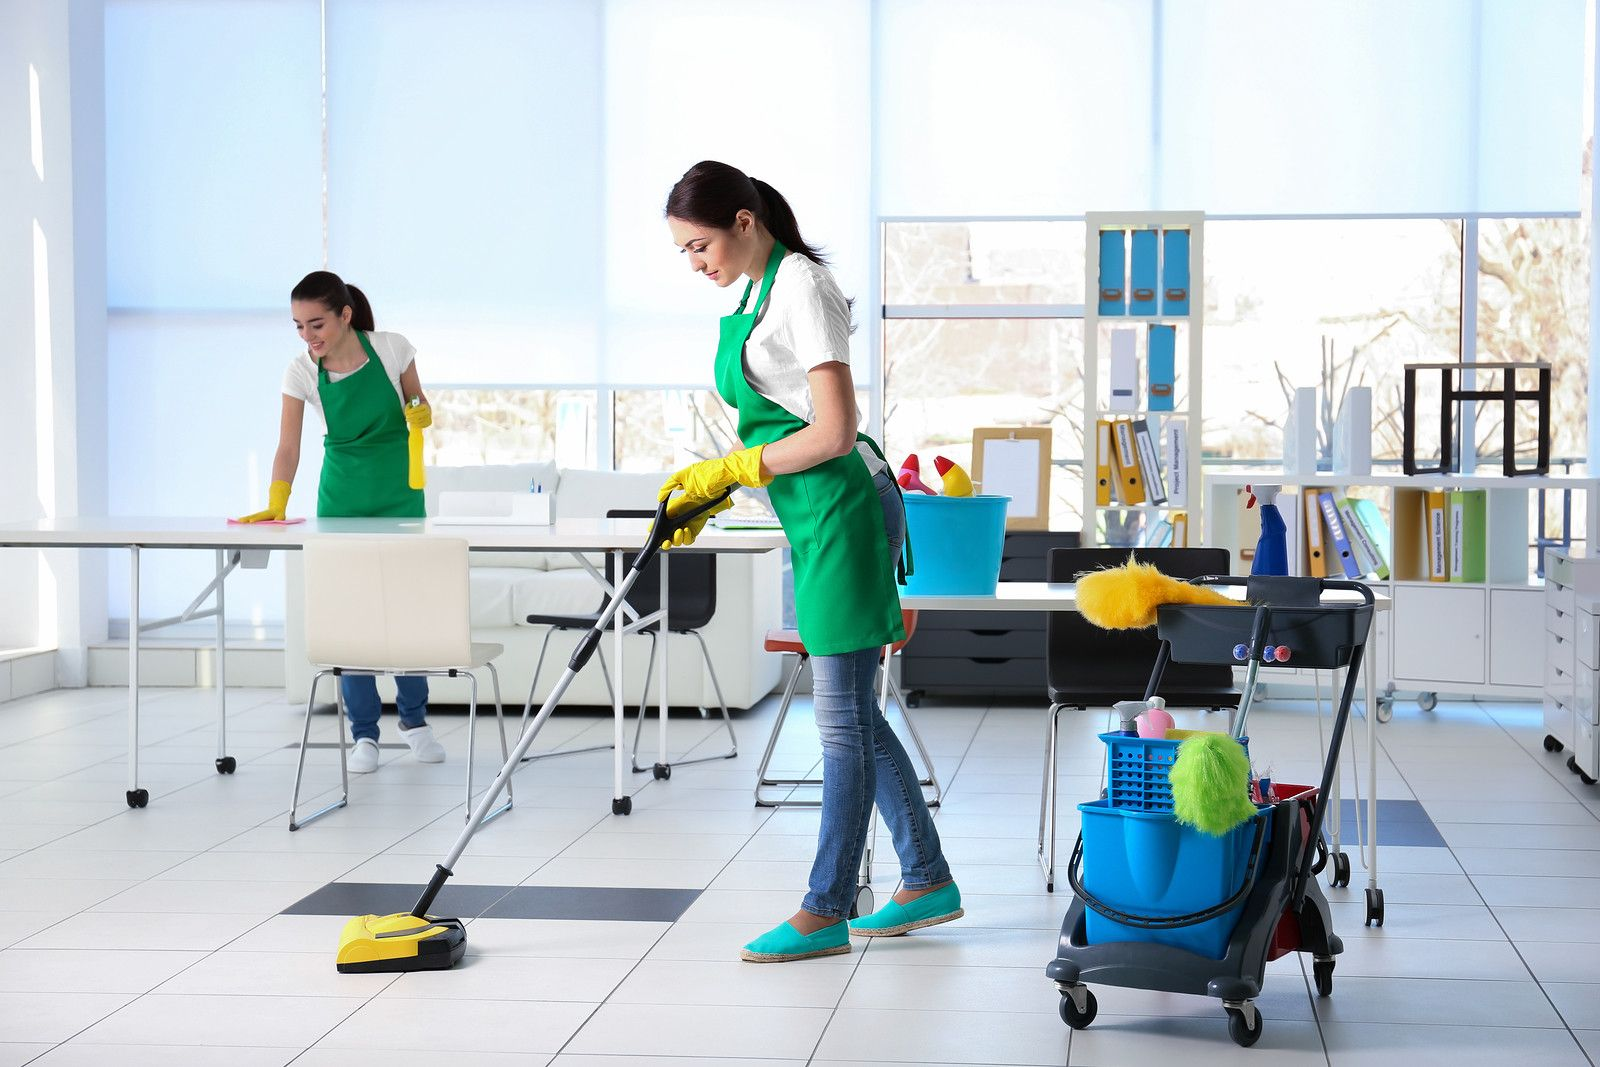 Commercial Cleaning Services Lynchburg Va In 2020 Office Cleaning Services Commercial Cleaning Company Cleaning Services Company